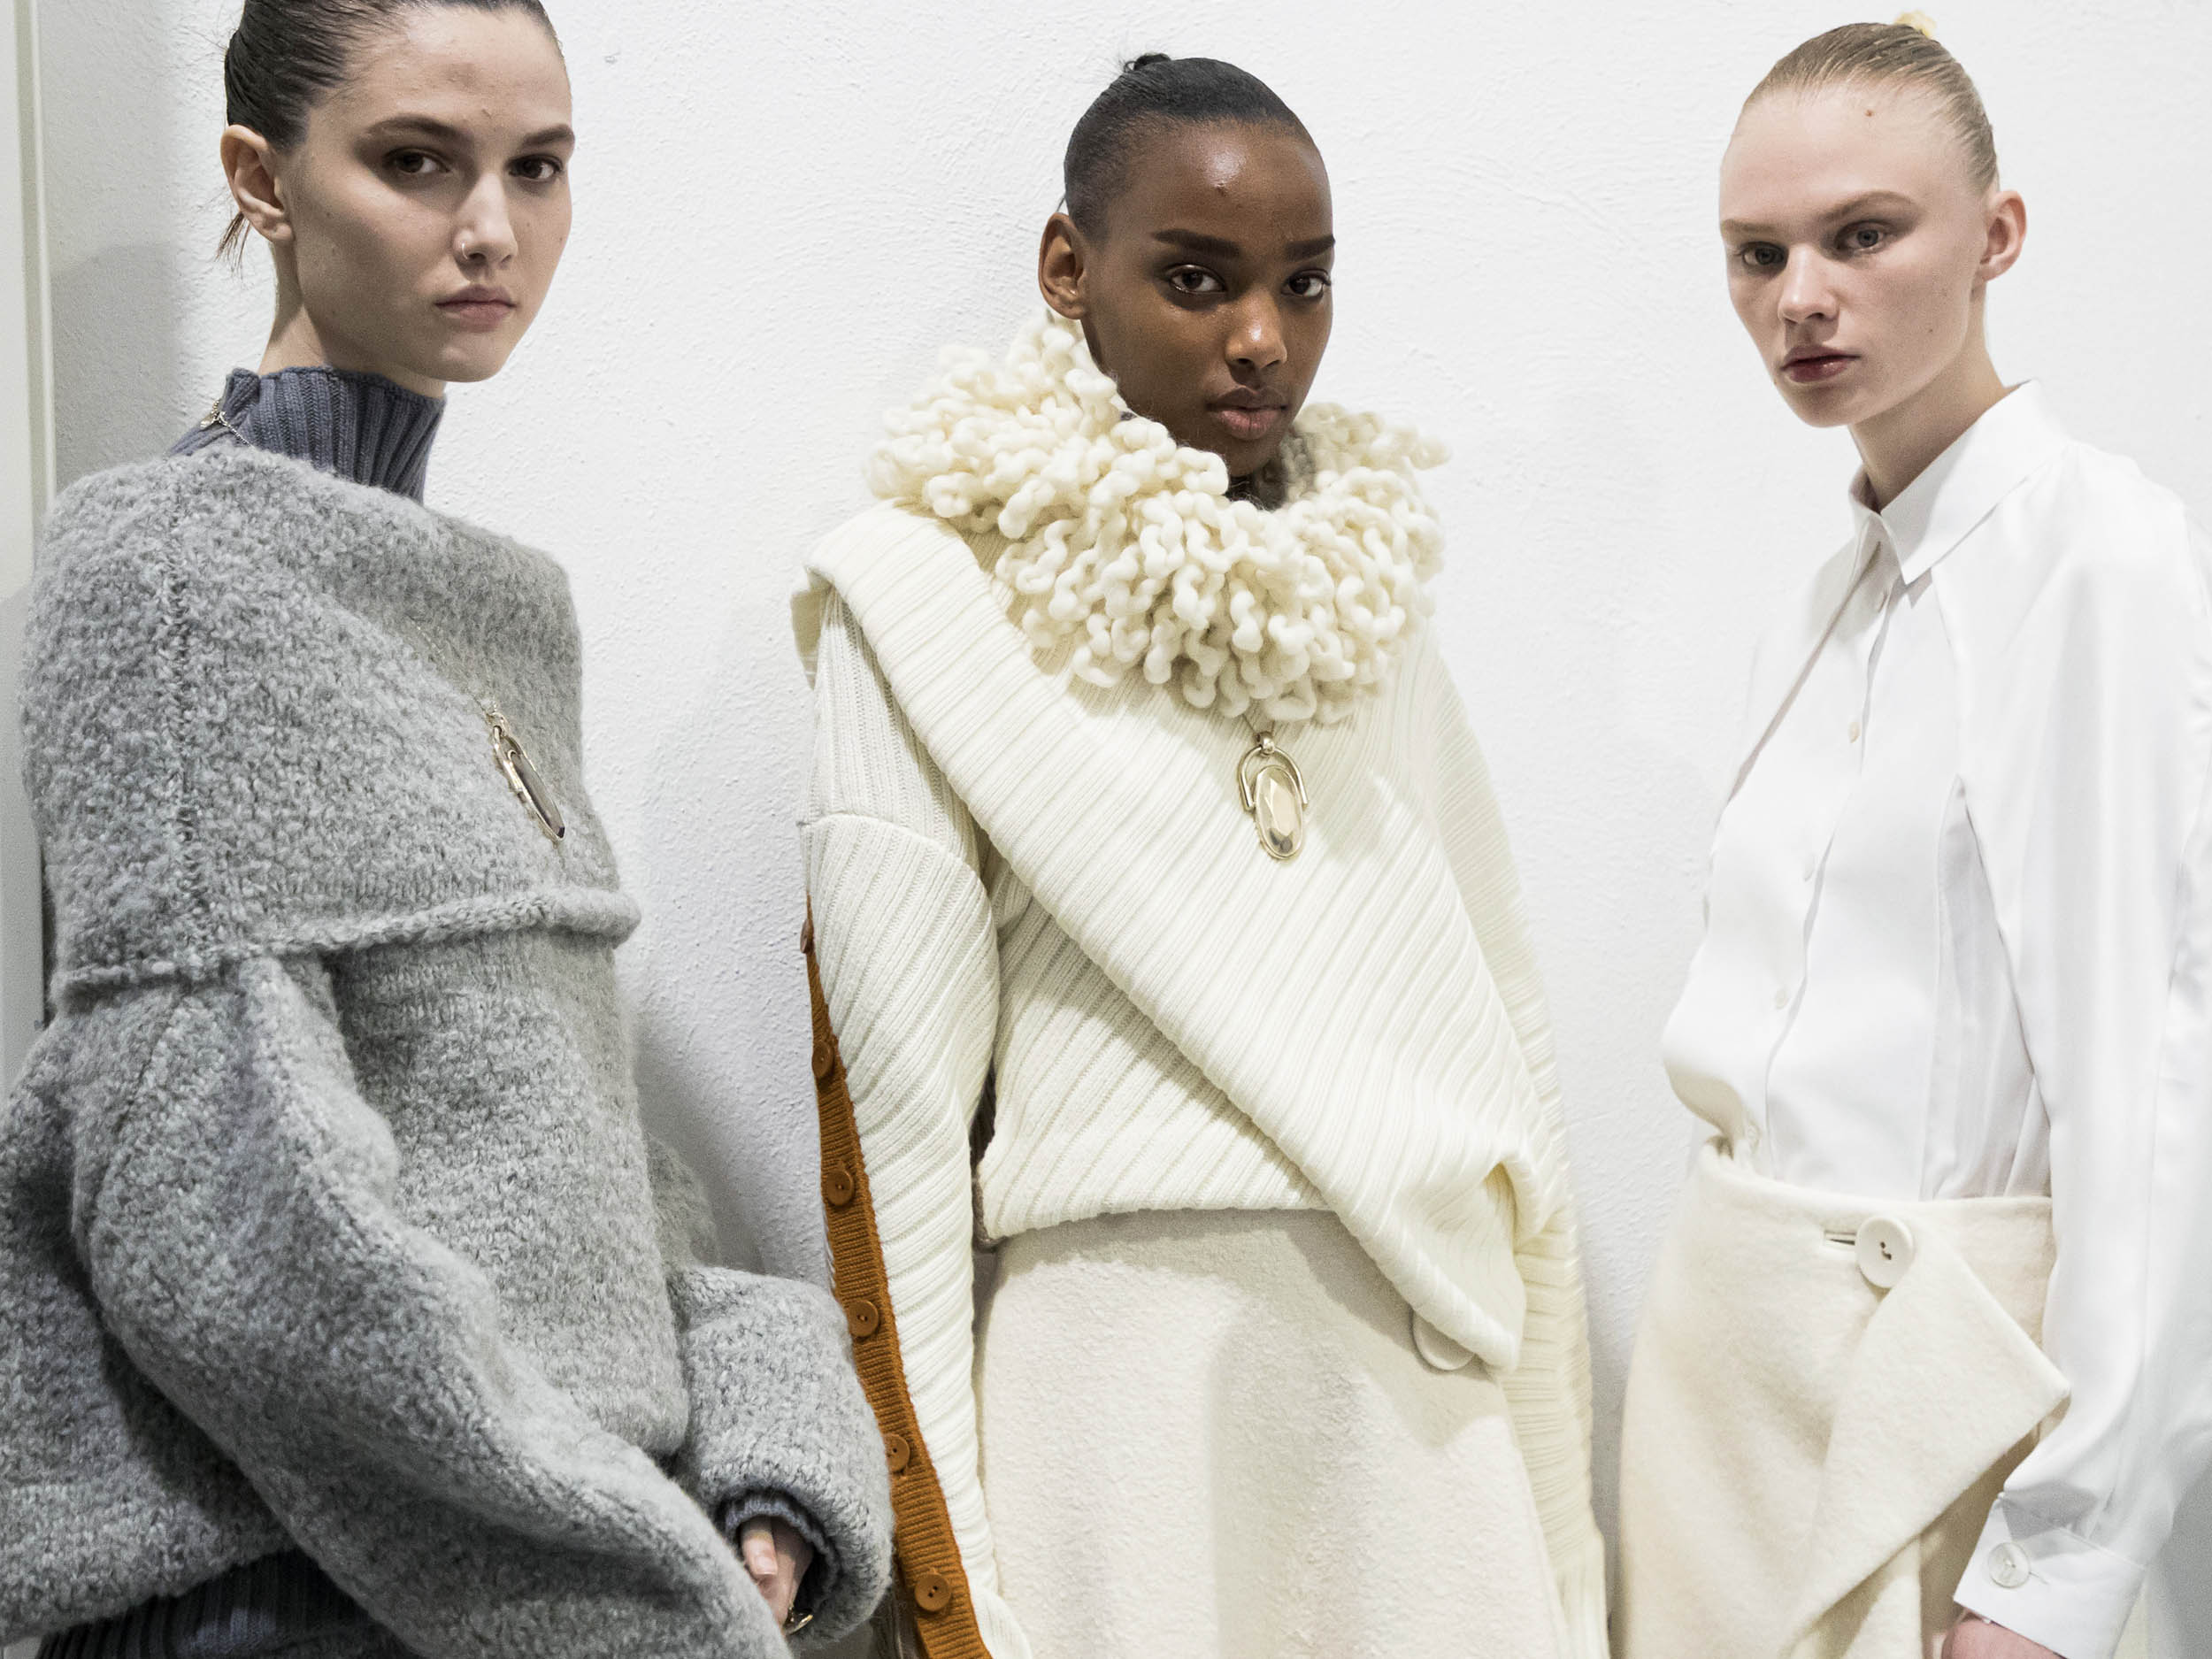 Ports 1961 delivers pastoral luxury for Fall/Winter 2021